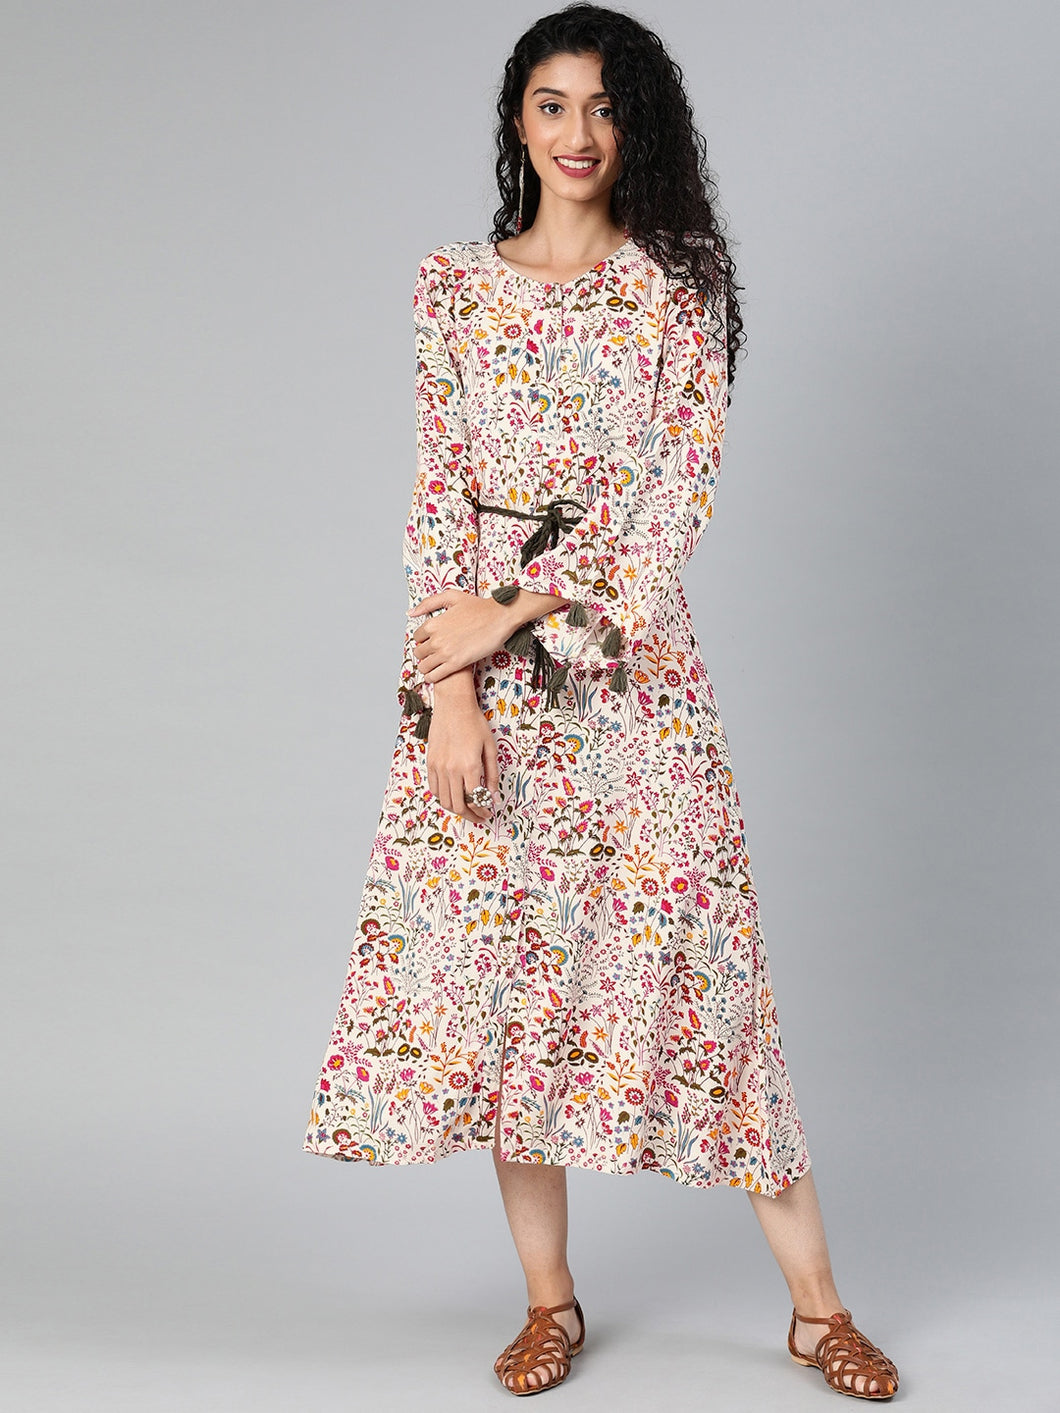 Women Off-White & Pink Printed Fit and Flare Dress With Tassel Detailing